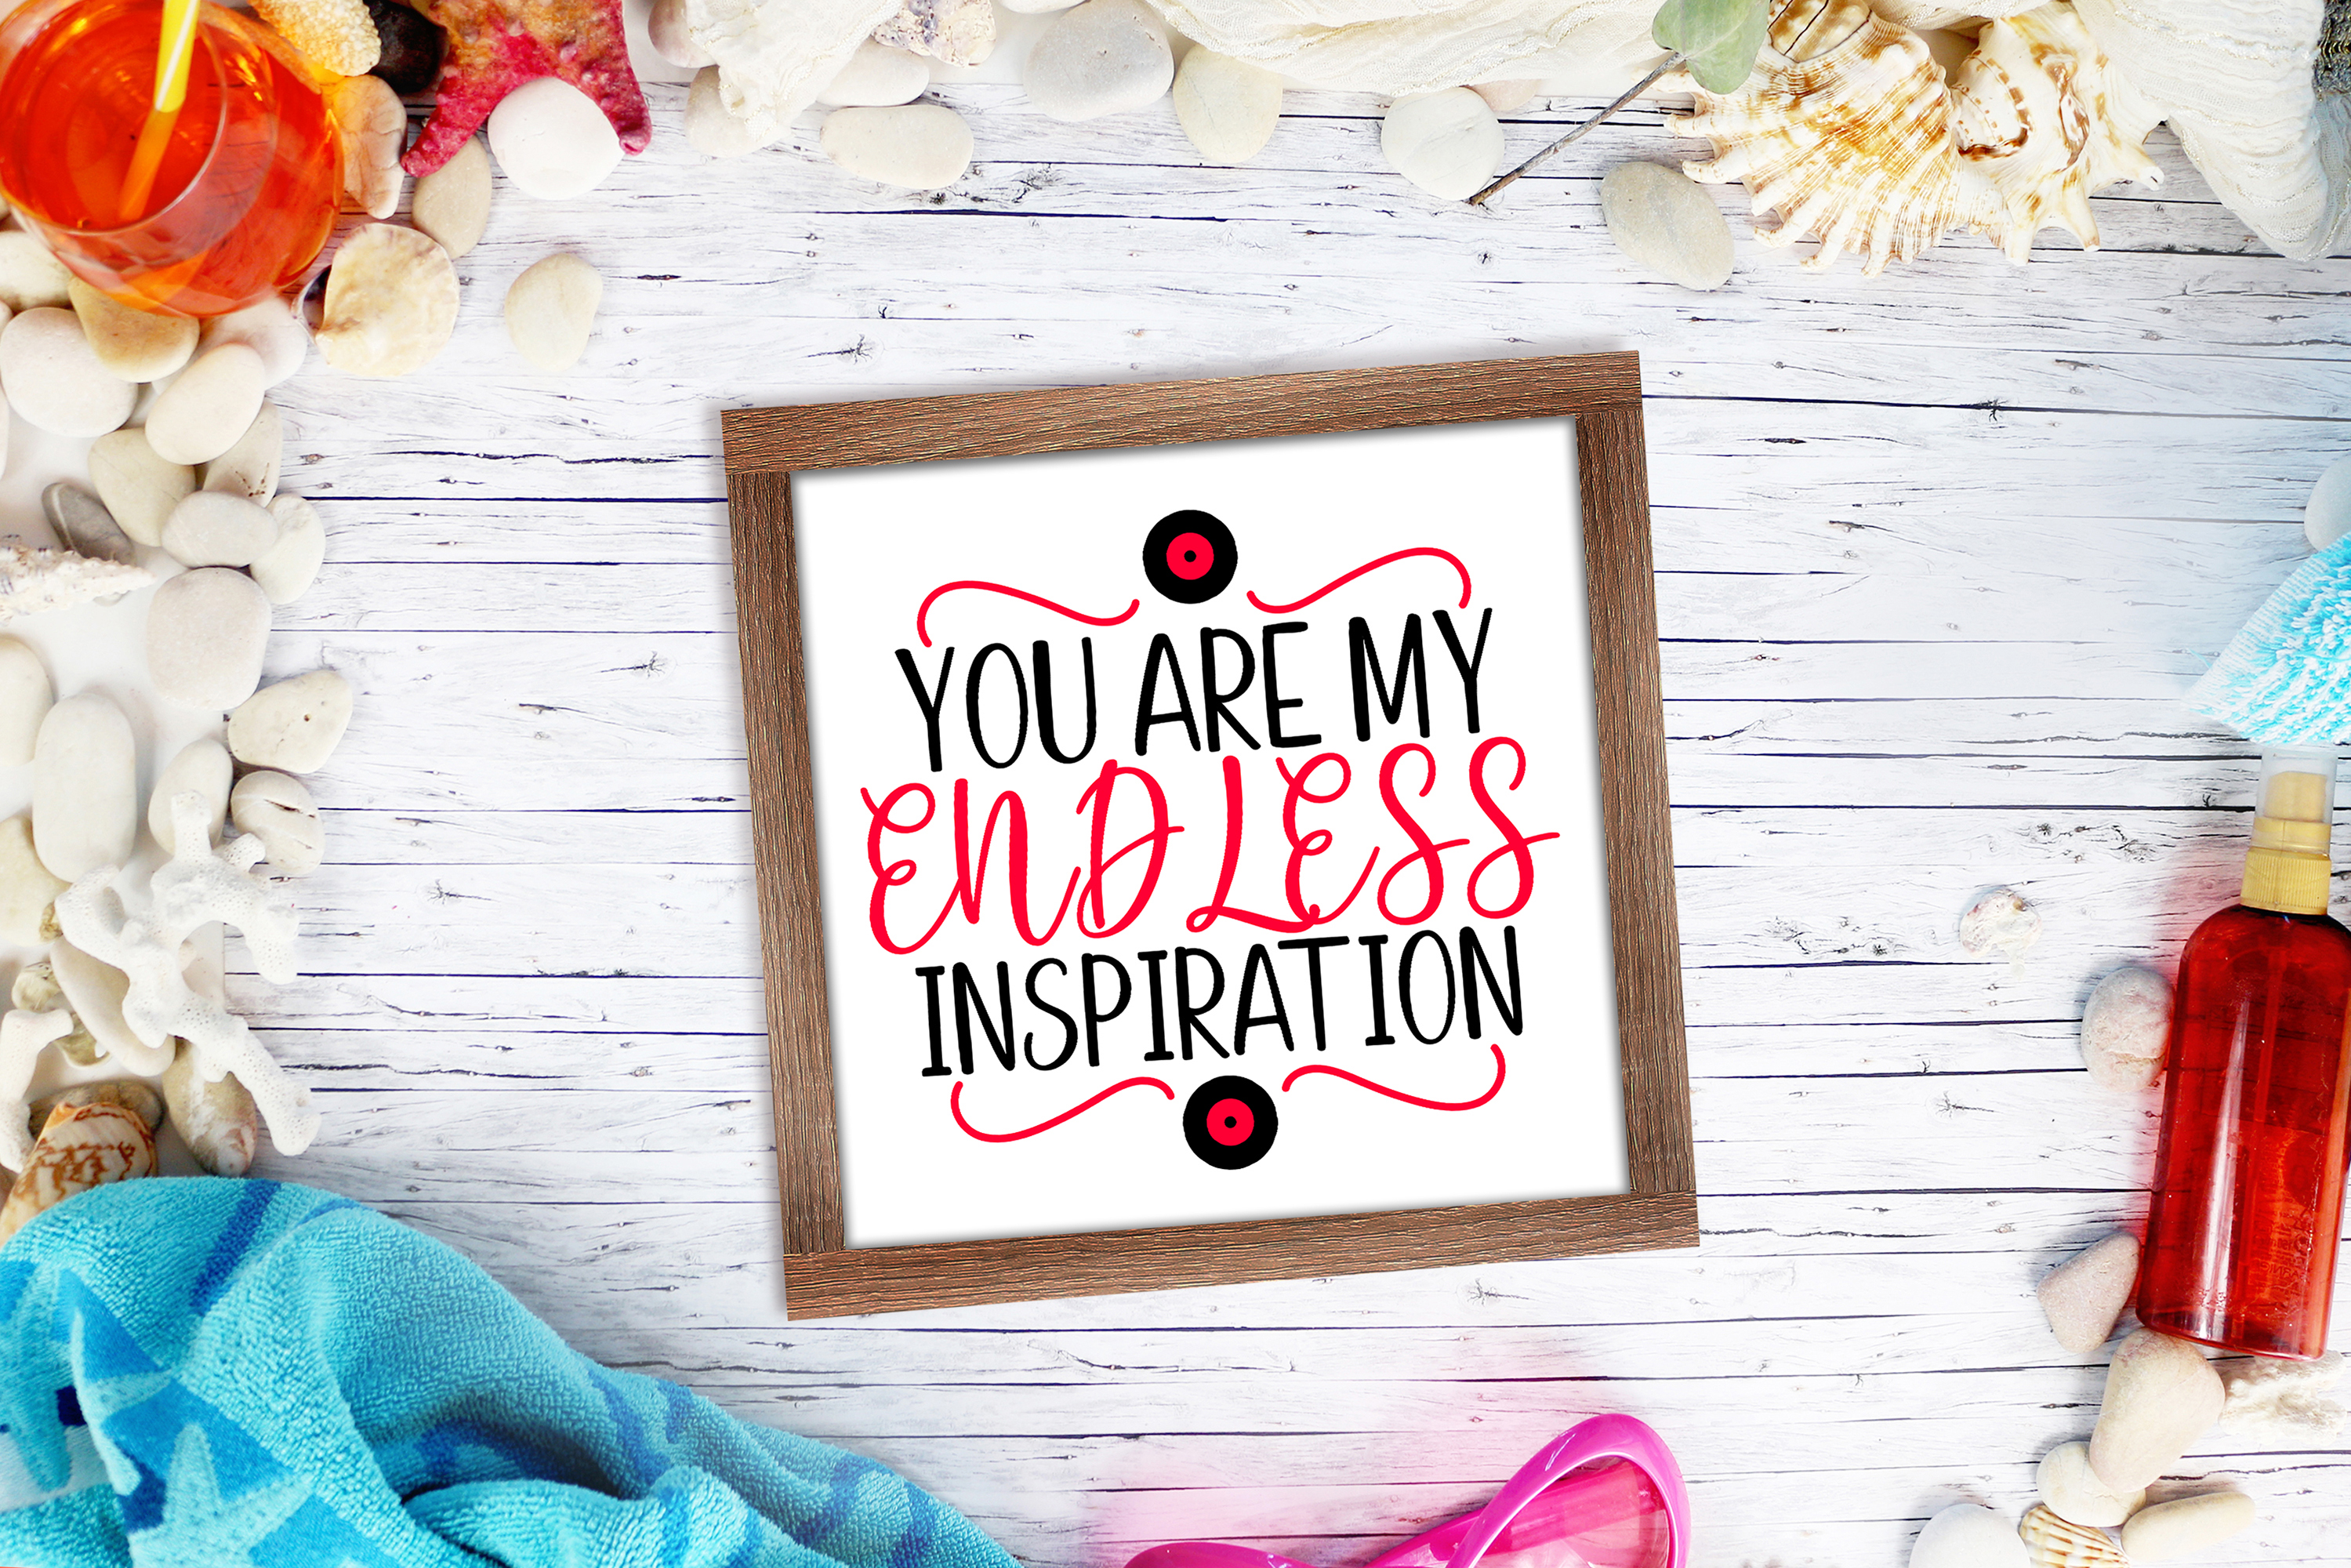 You Are My Endless Inspiration example image 3